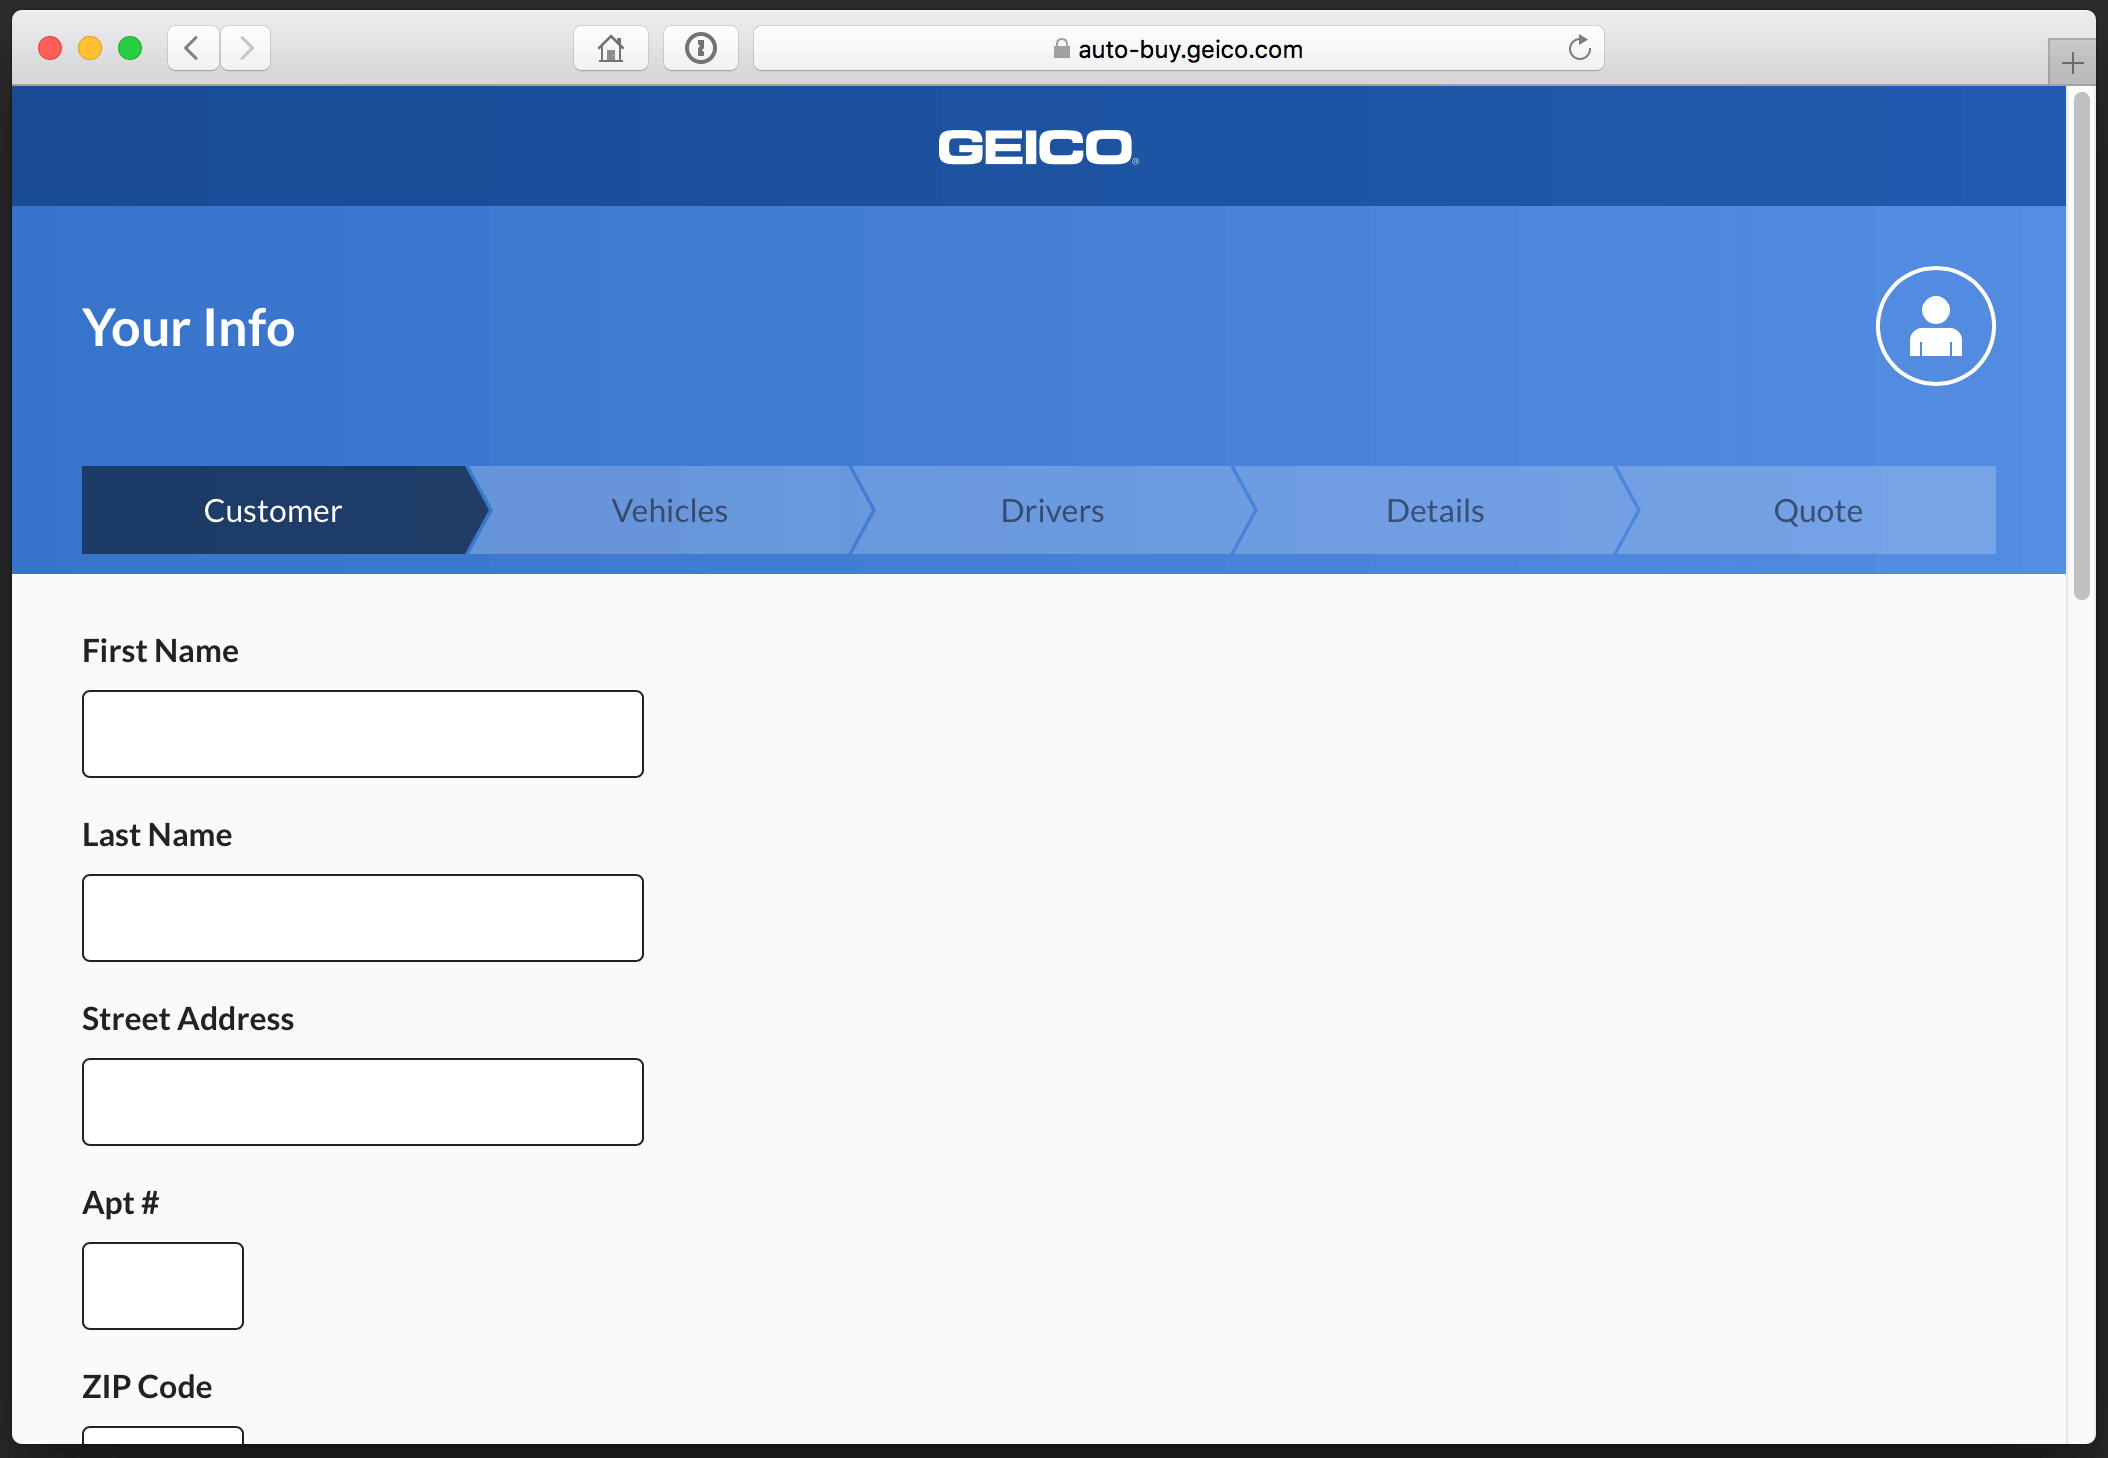 Screenshot of Geico's form design